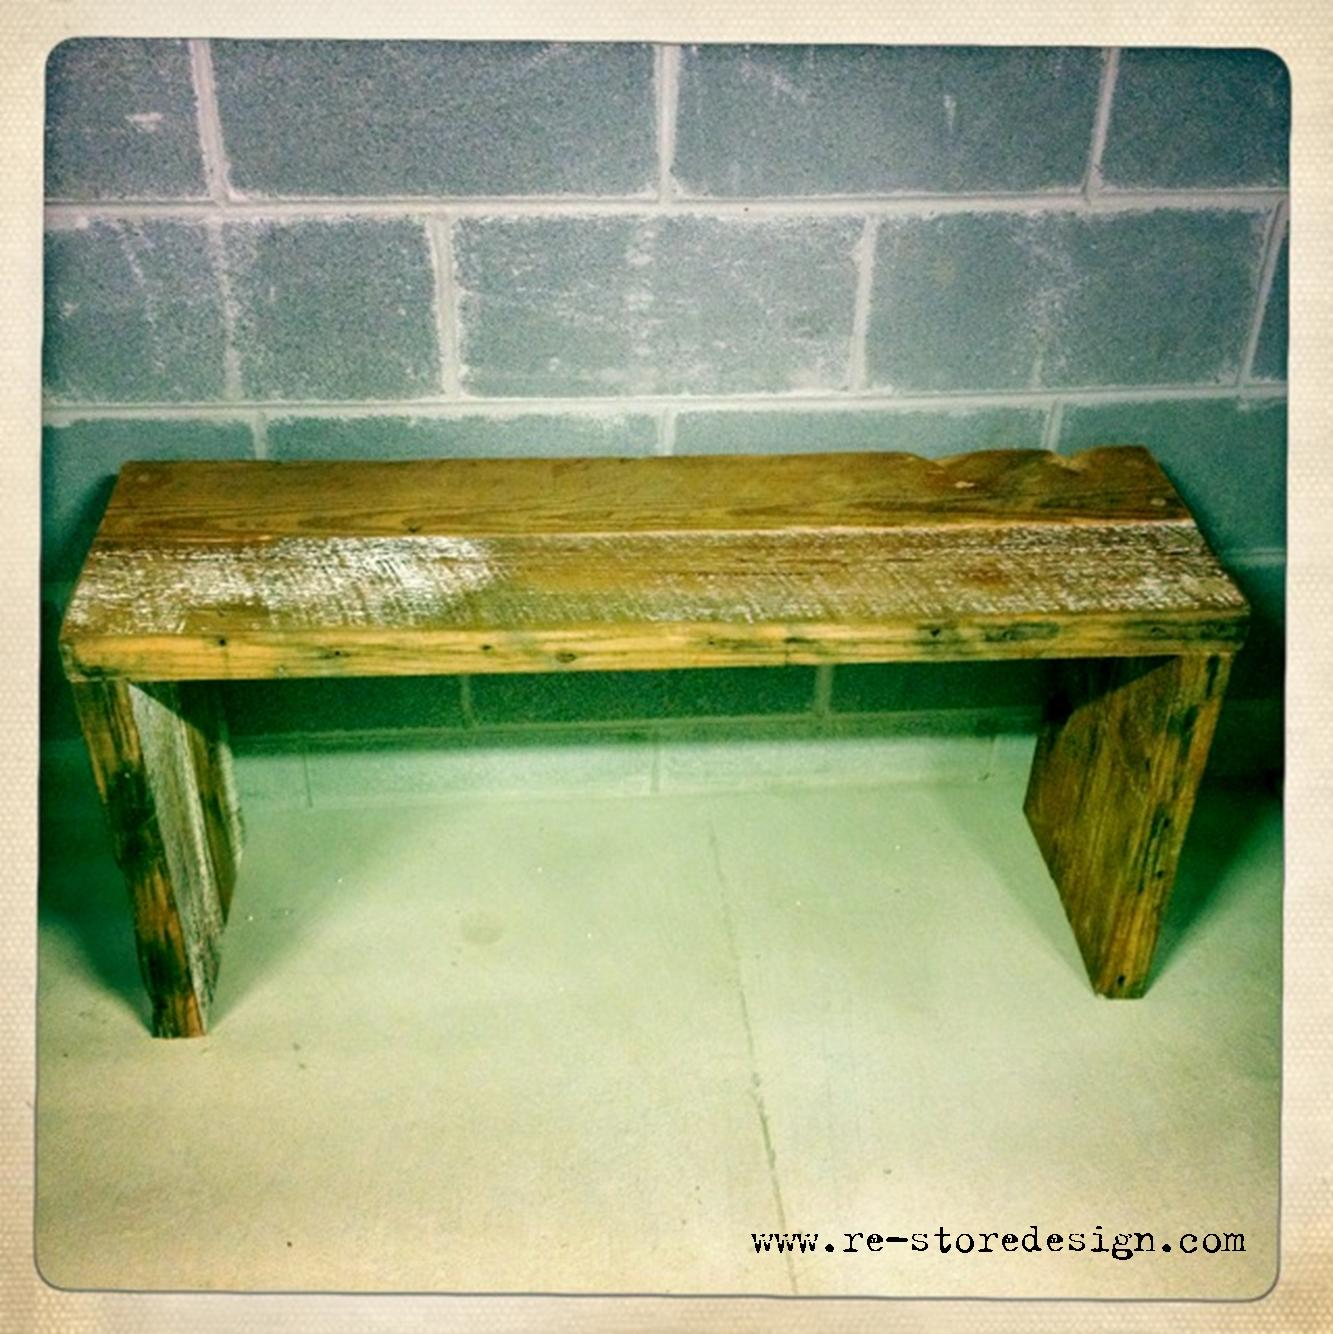 12 Reclaimed Wood Bench